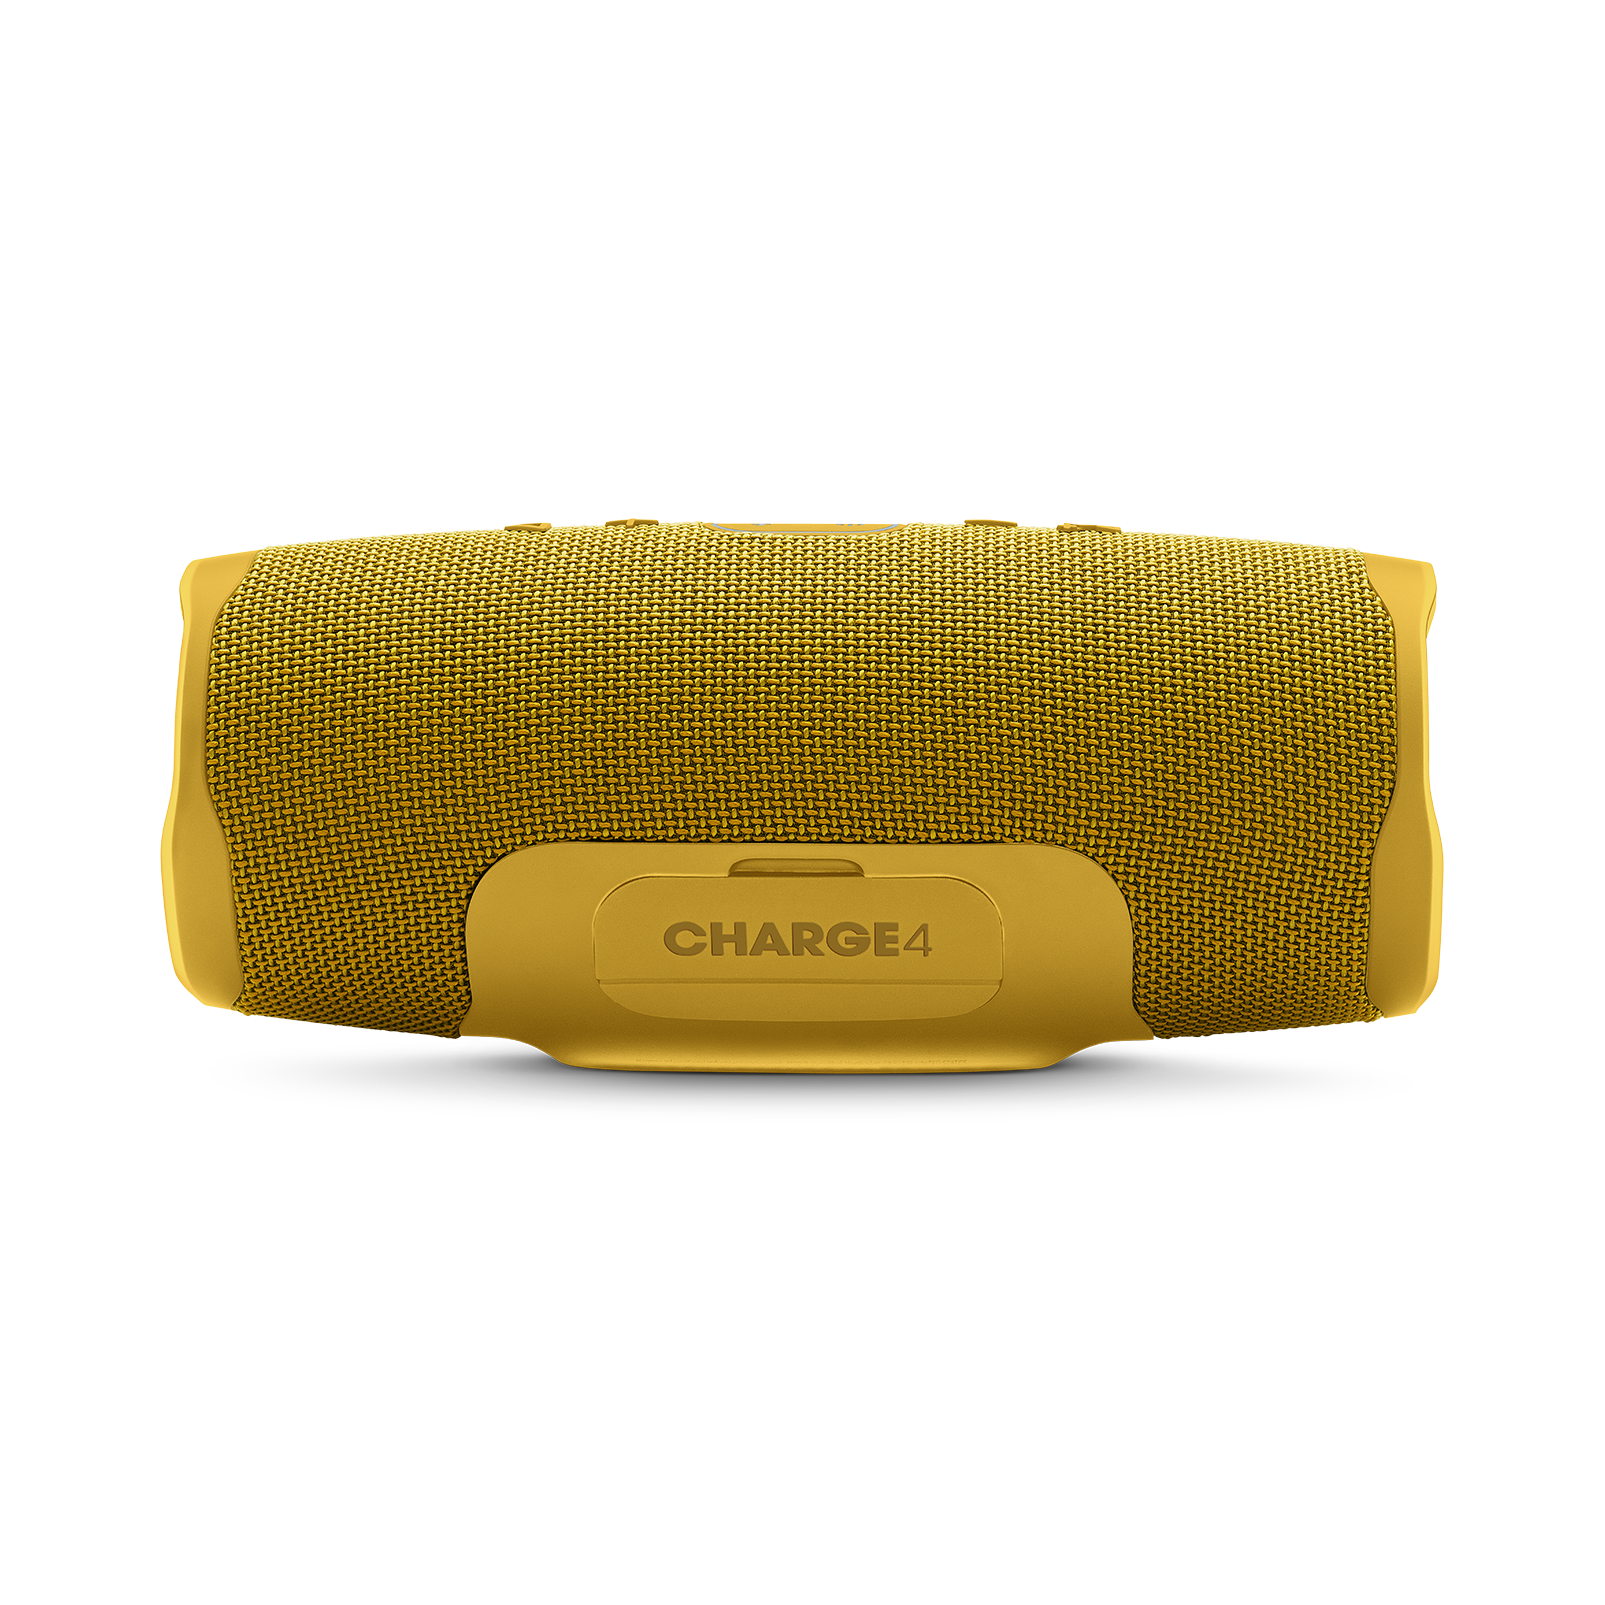 JBL Charge 4 - Mustard Yellow - Portable Bluetooth speaker - Back